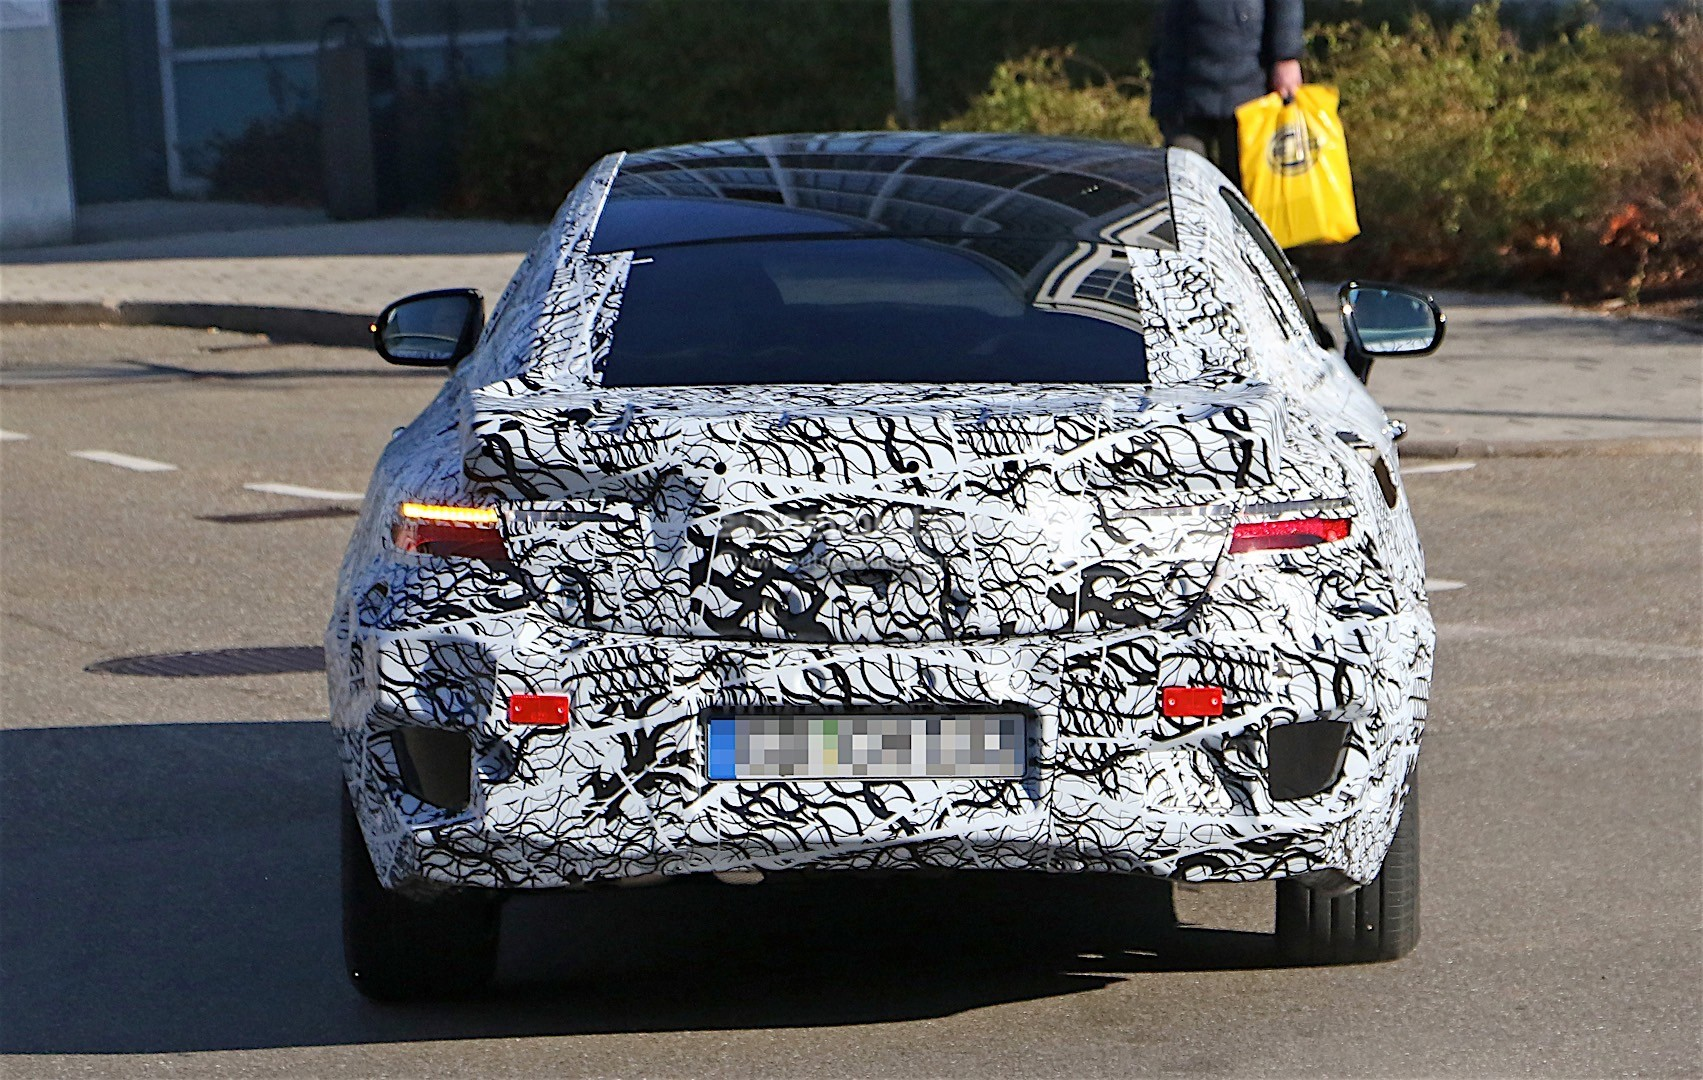 2018-mercedes-benz-e-class-coupe-shows-its-b-pillarless-profile-for-the-first-time_12